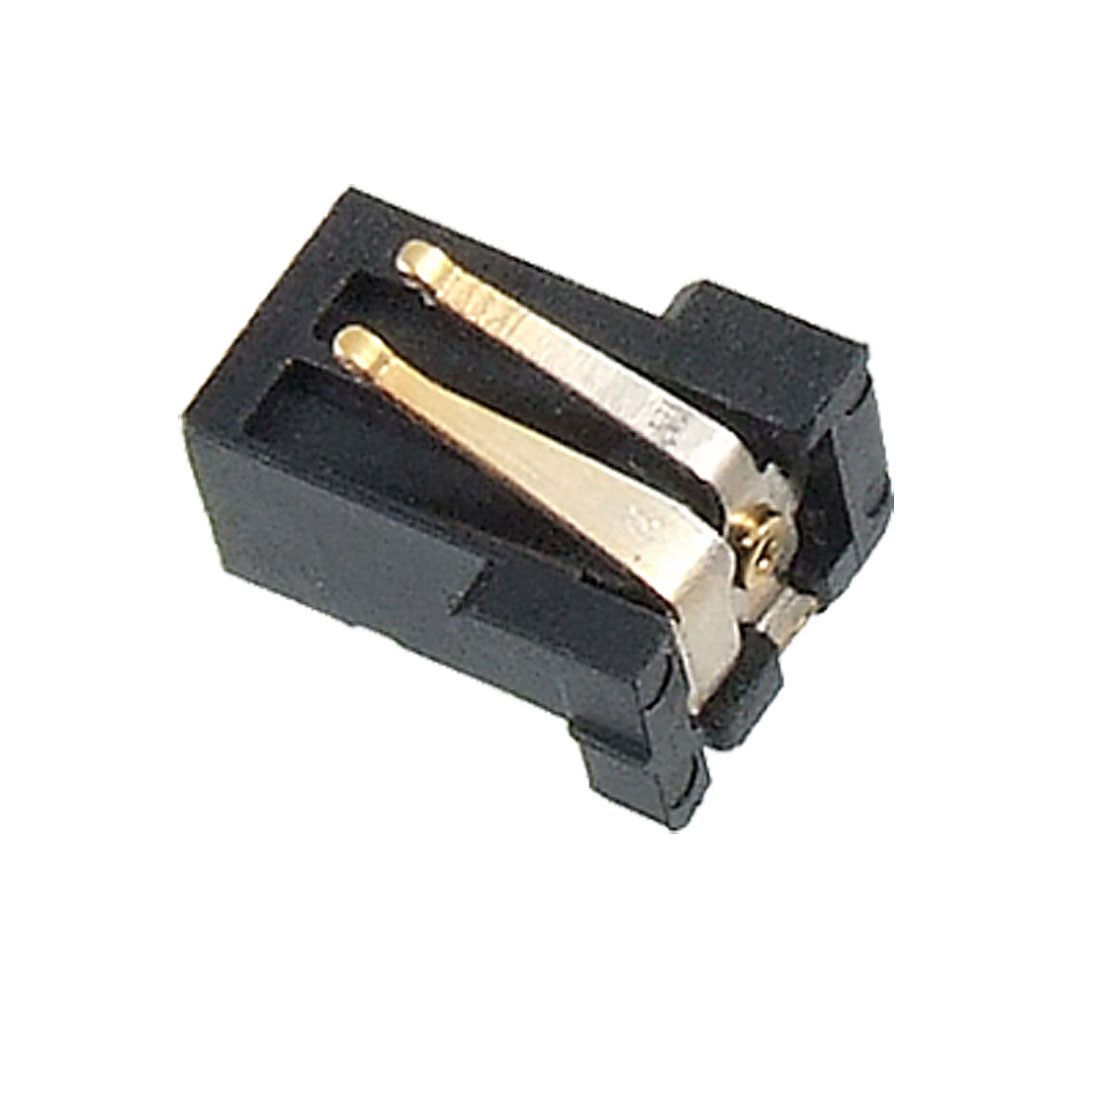 Replacement 2.0mm Charger Port Connector for Nokia 5220